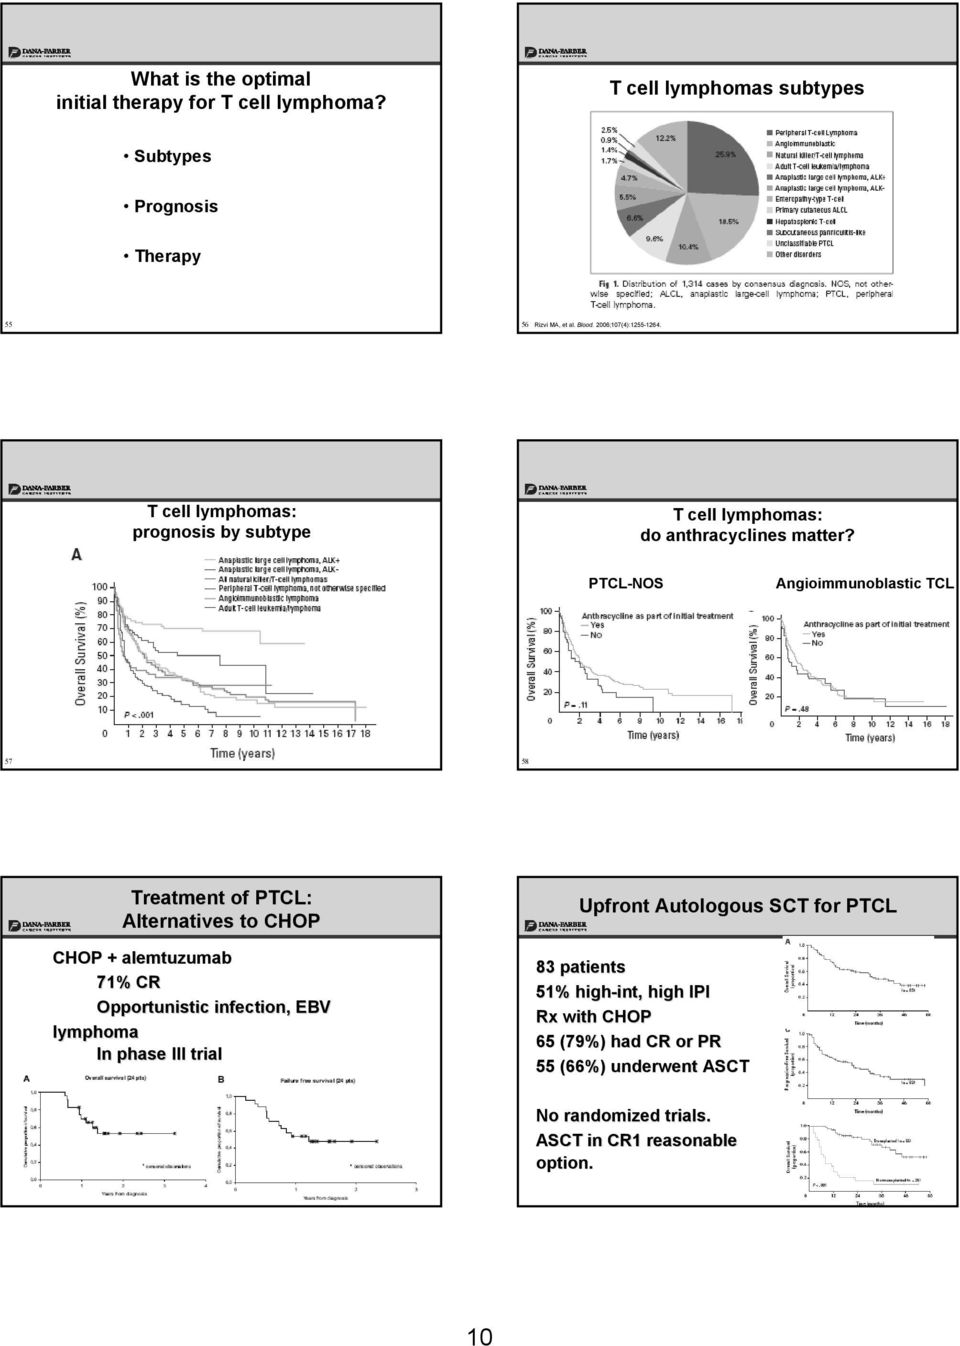 PTCL-NOS Angioimmunoblastic TCL 57 58 Treatment of PTCL: Alternatives to CHOP CHOP + alemtuzumab 71% CR Opportunistic infection, EBV lymphoma In